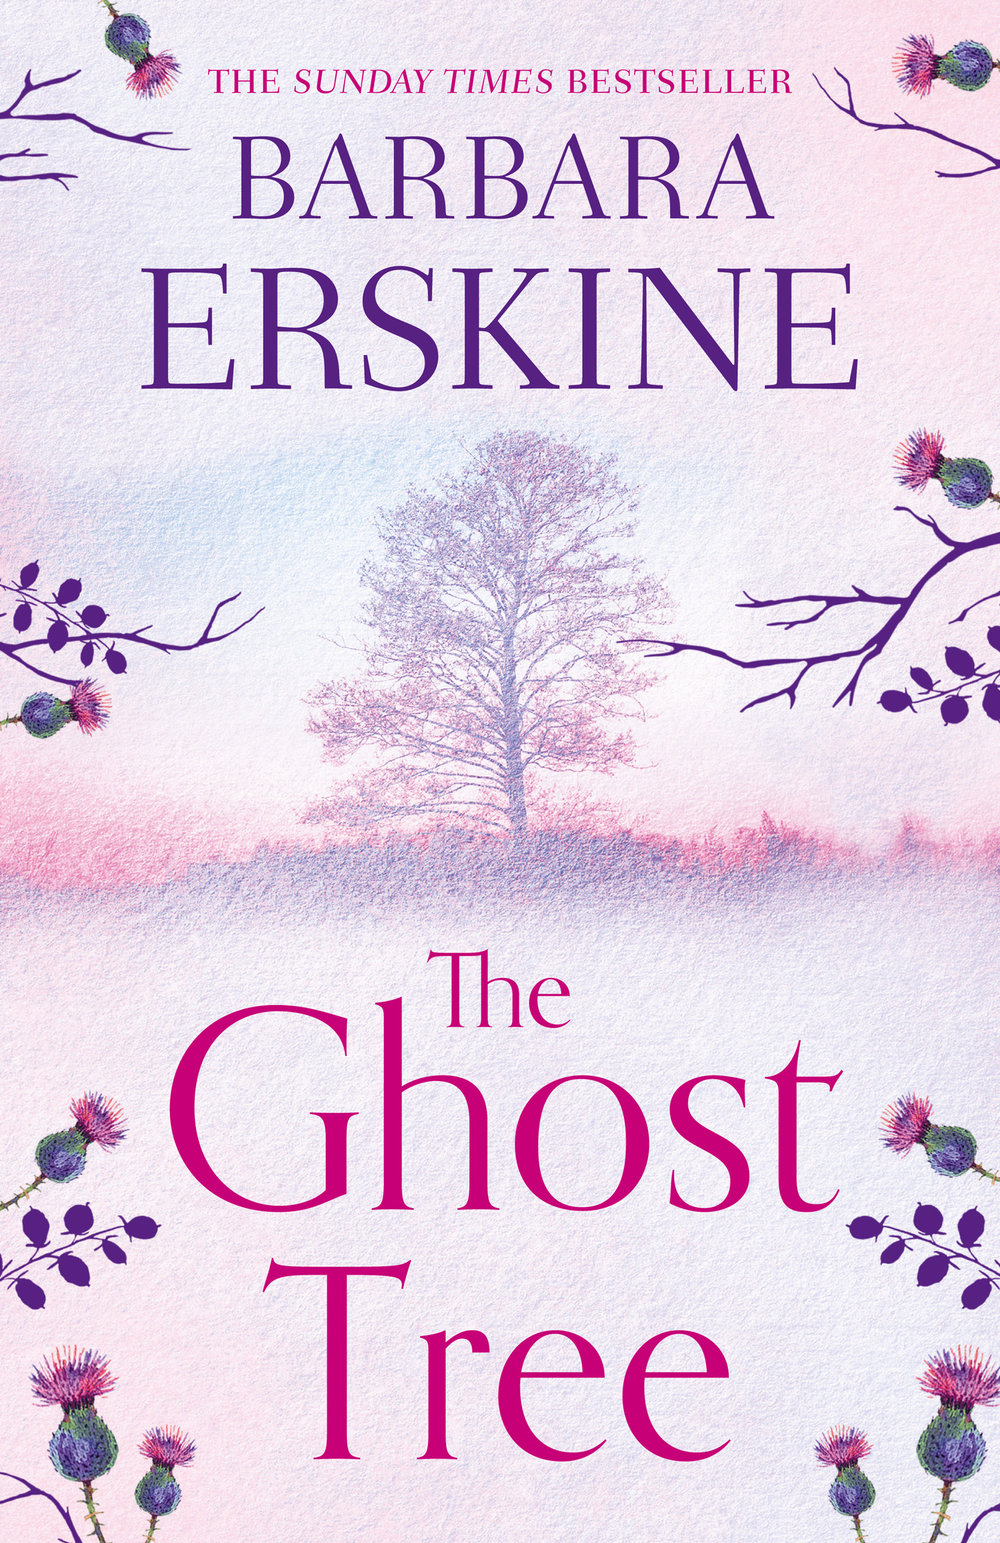 THE GHOST TREE final cover.JPG